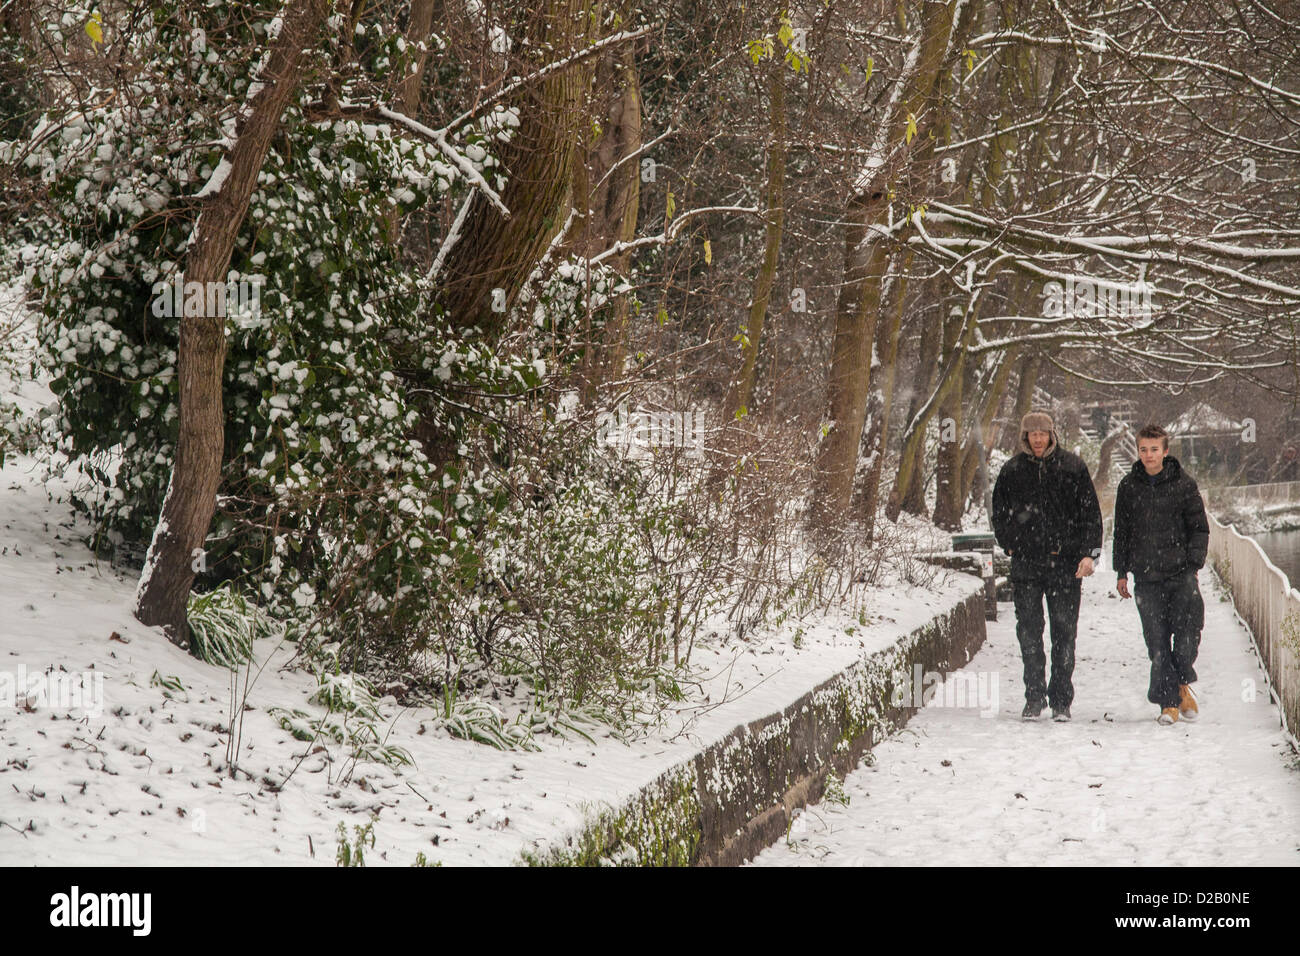 London, UK. 18th January 2013. Strolling along Regent's Canal, Central London, as snow falls across the South - Stock Image